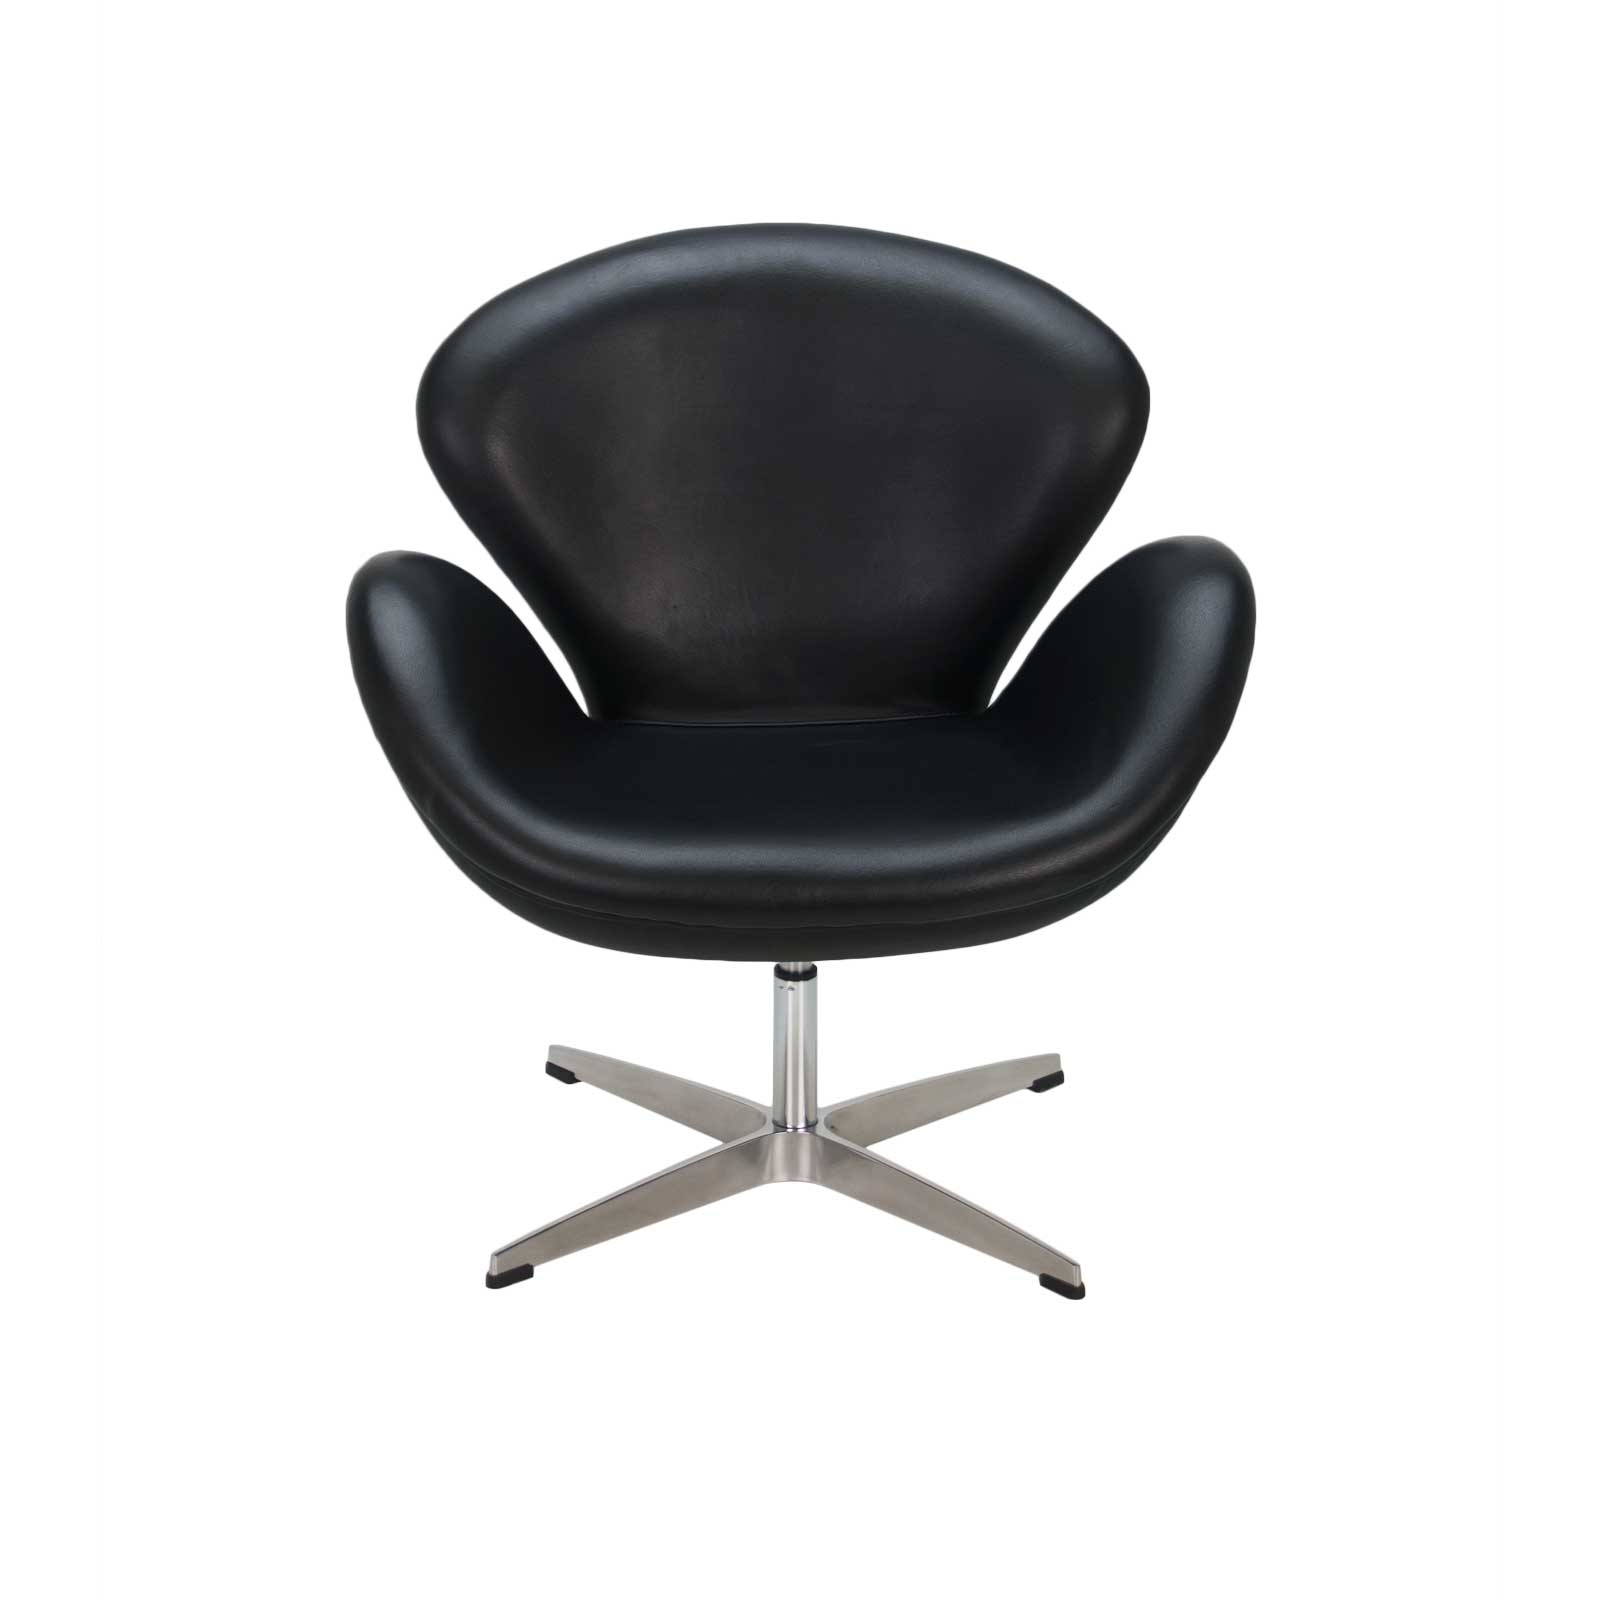 Arne Jacobsen Swan Chair Arne Jacobsen Swan Chair (black) - Formdecor